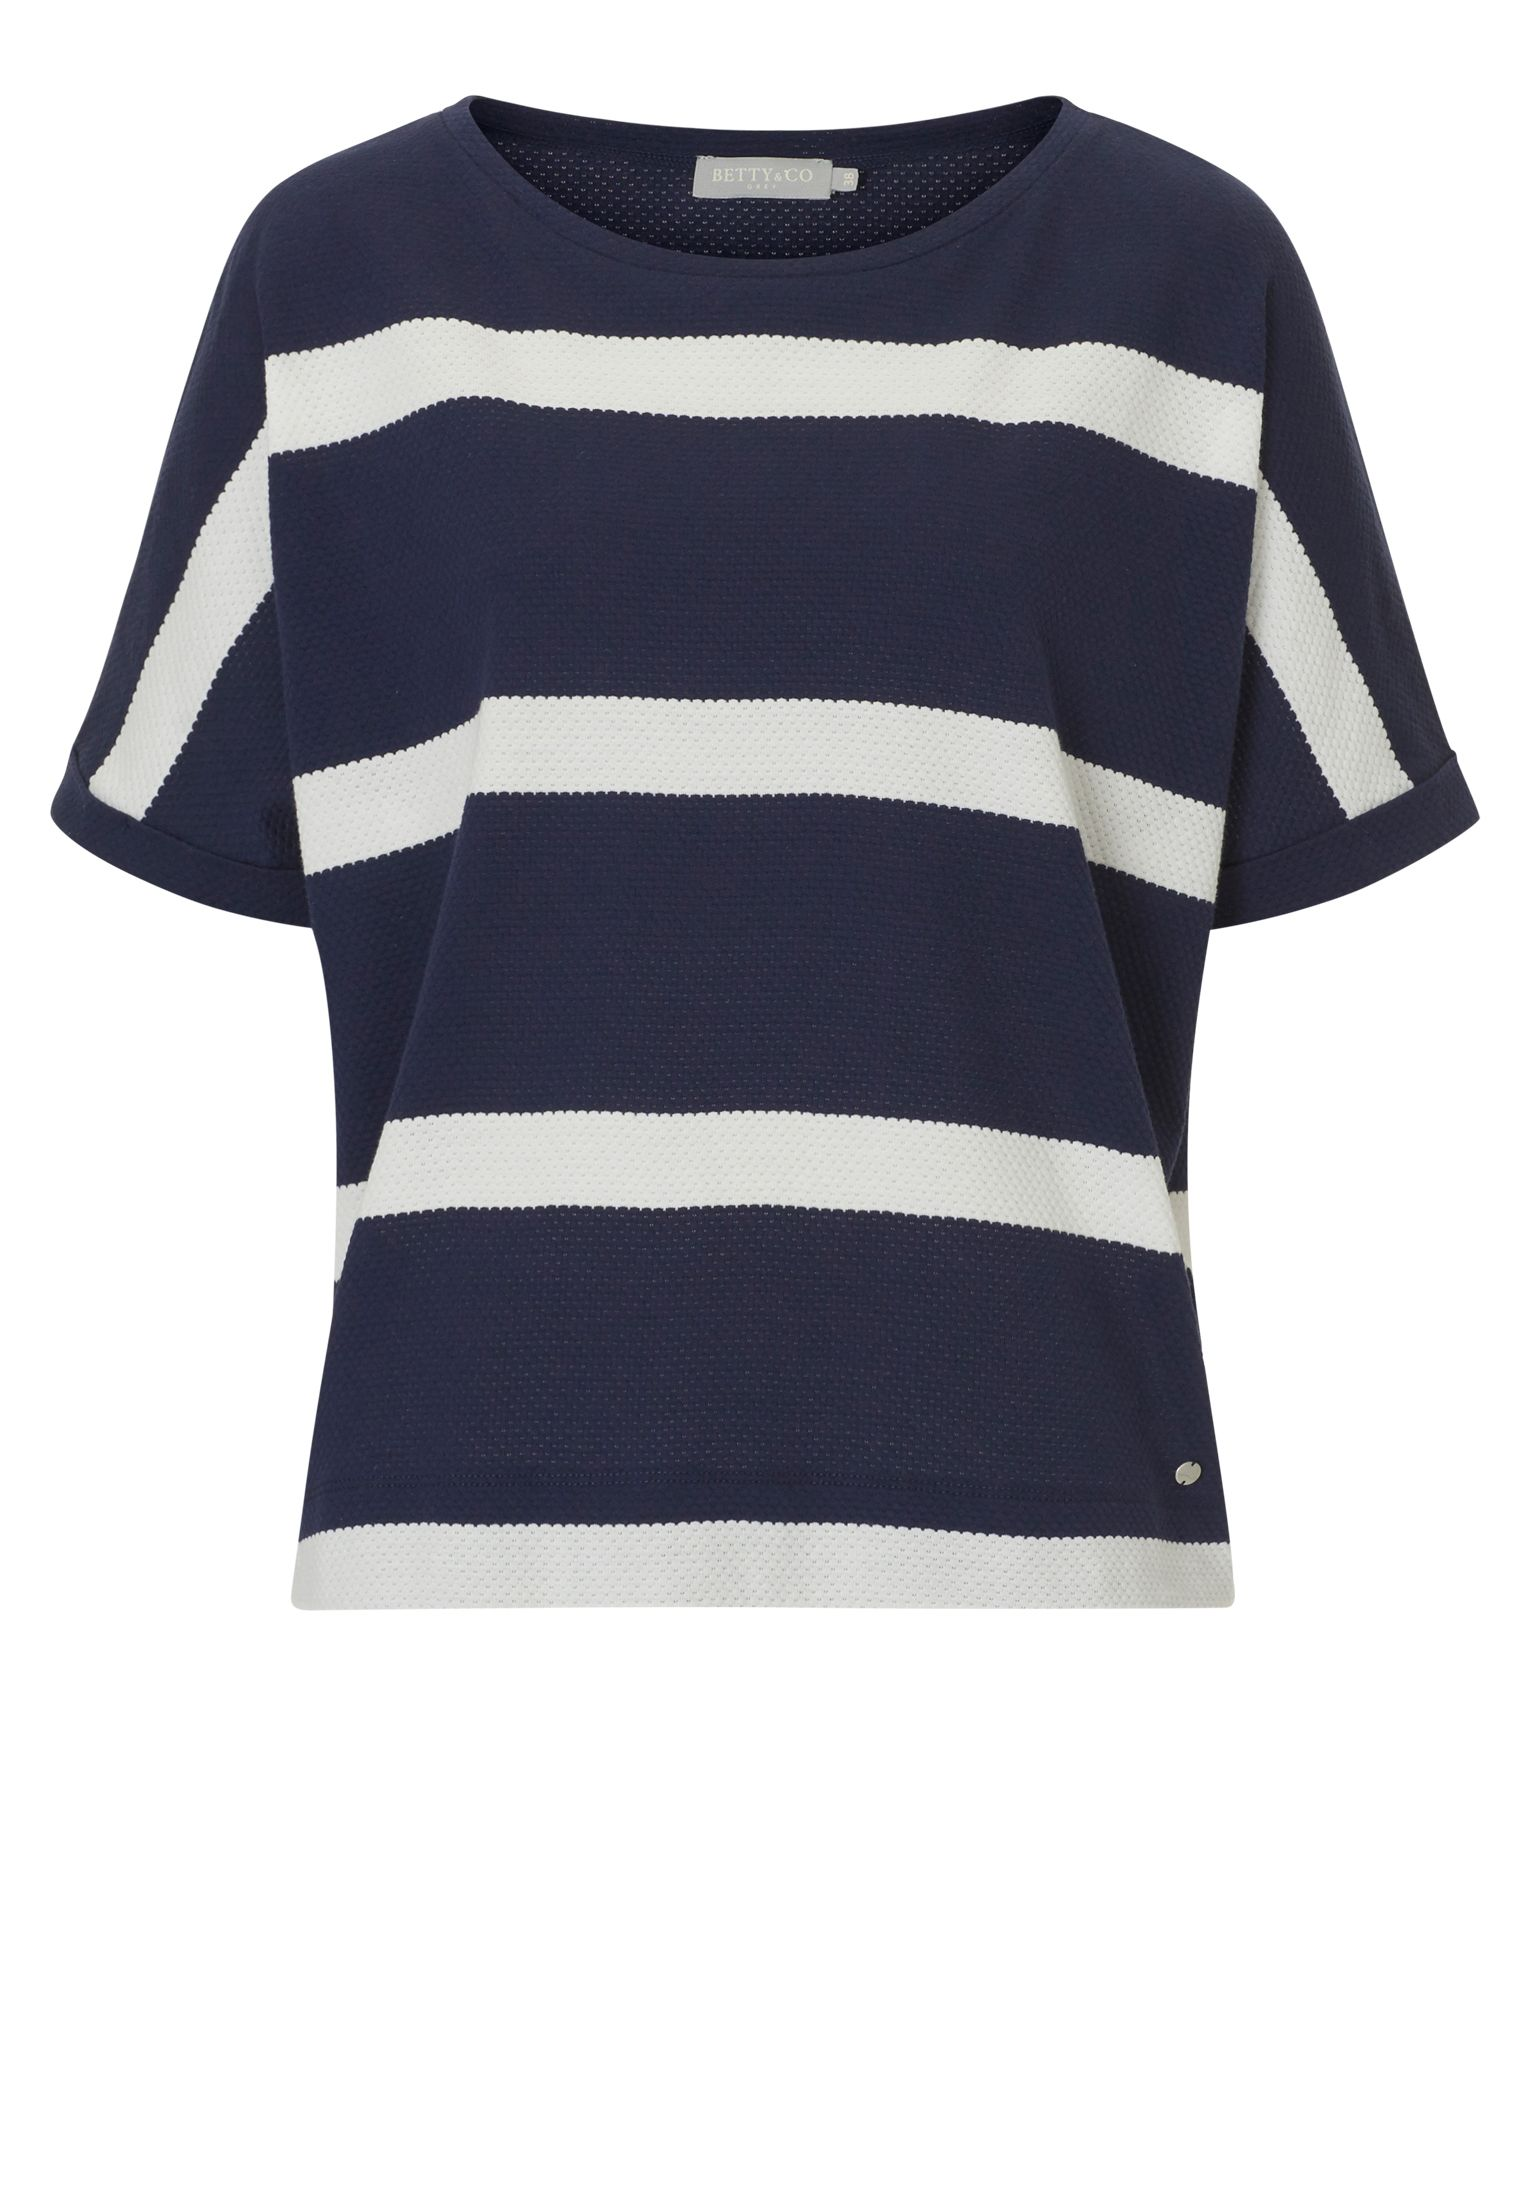 Betty & Co. Textured striped top, Multi-Coloured